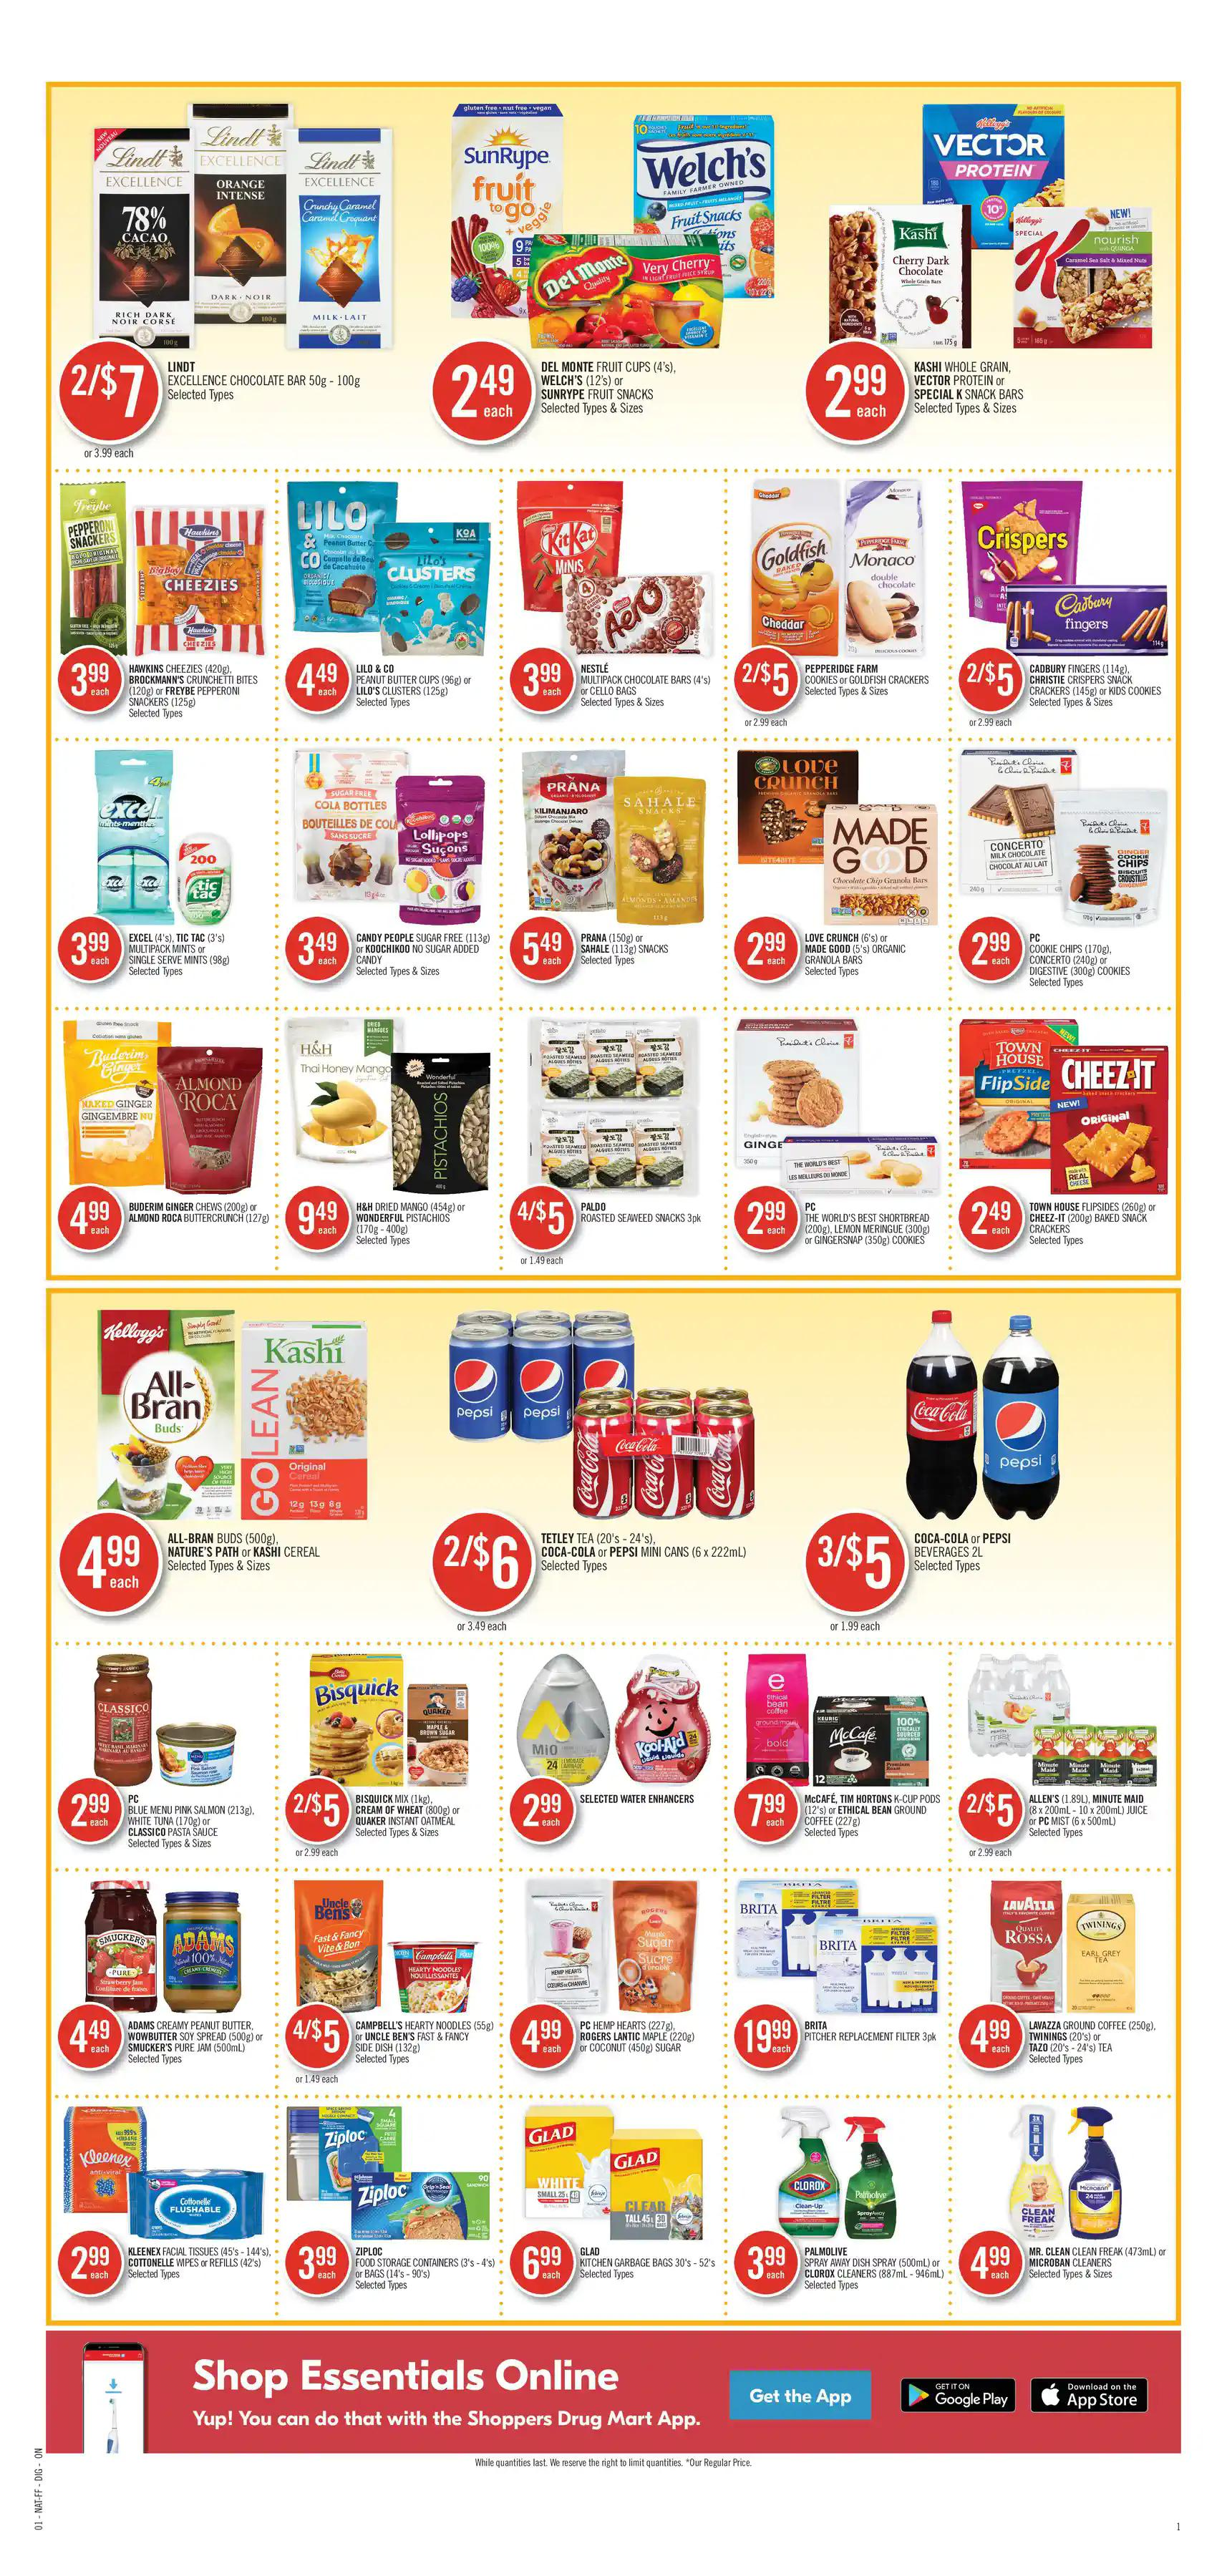 Shoppers Drug Mart - Weekly Flyer Specials - Page 6